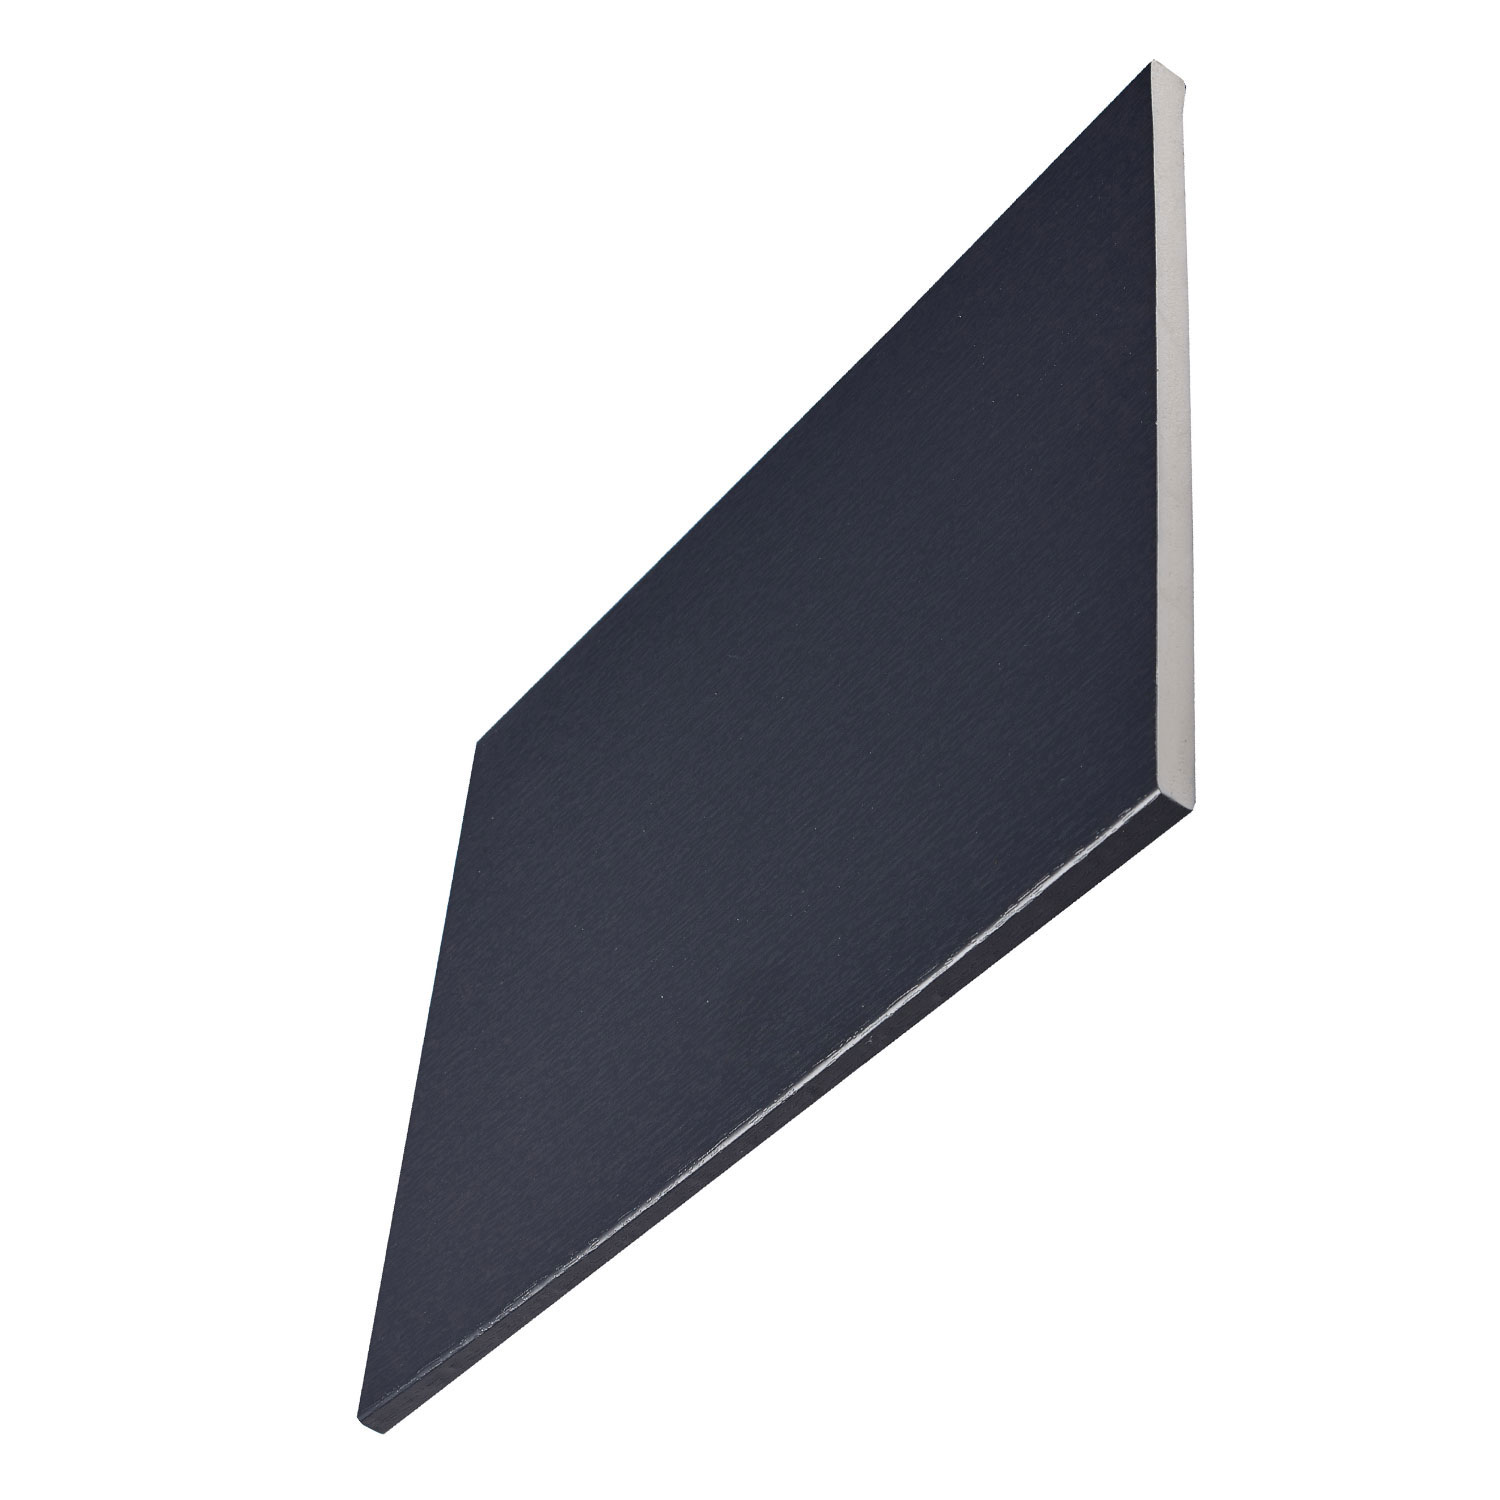 9mm Anthracite Grey General Purpose Boards